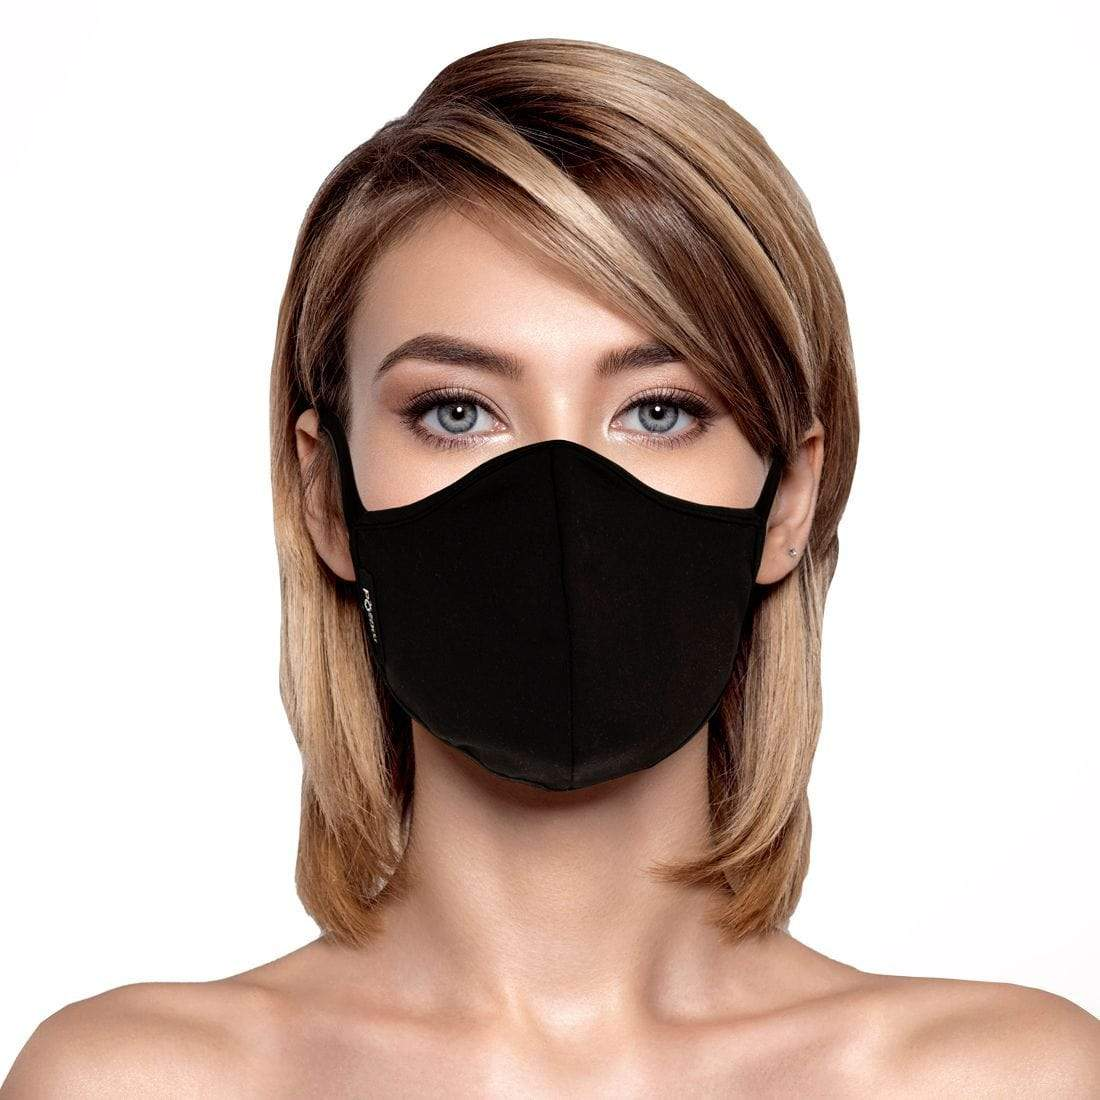 Masqd Ultra Soft Face Mask in Black on woman with blonde hair